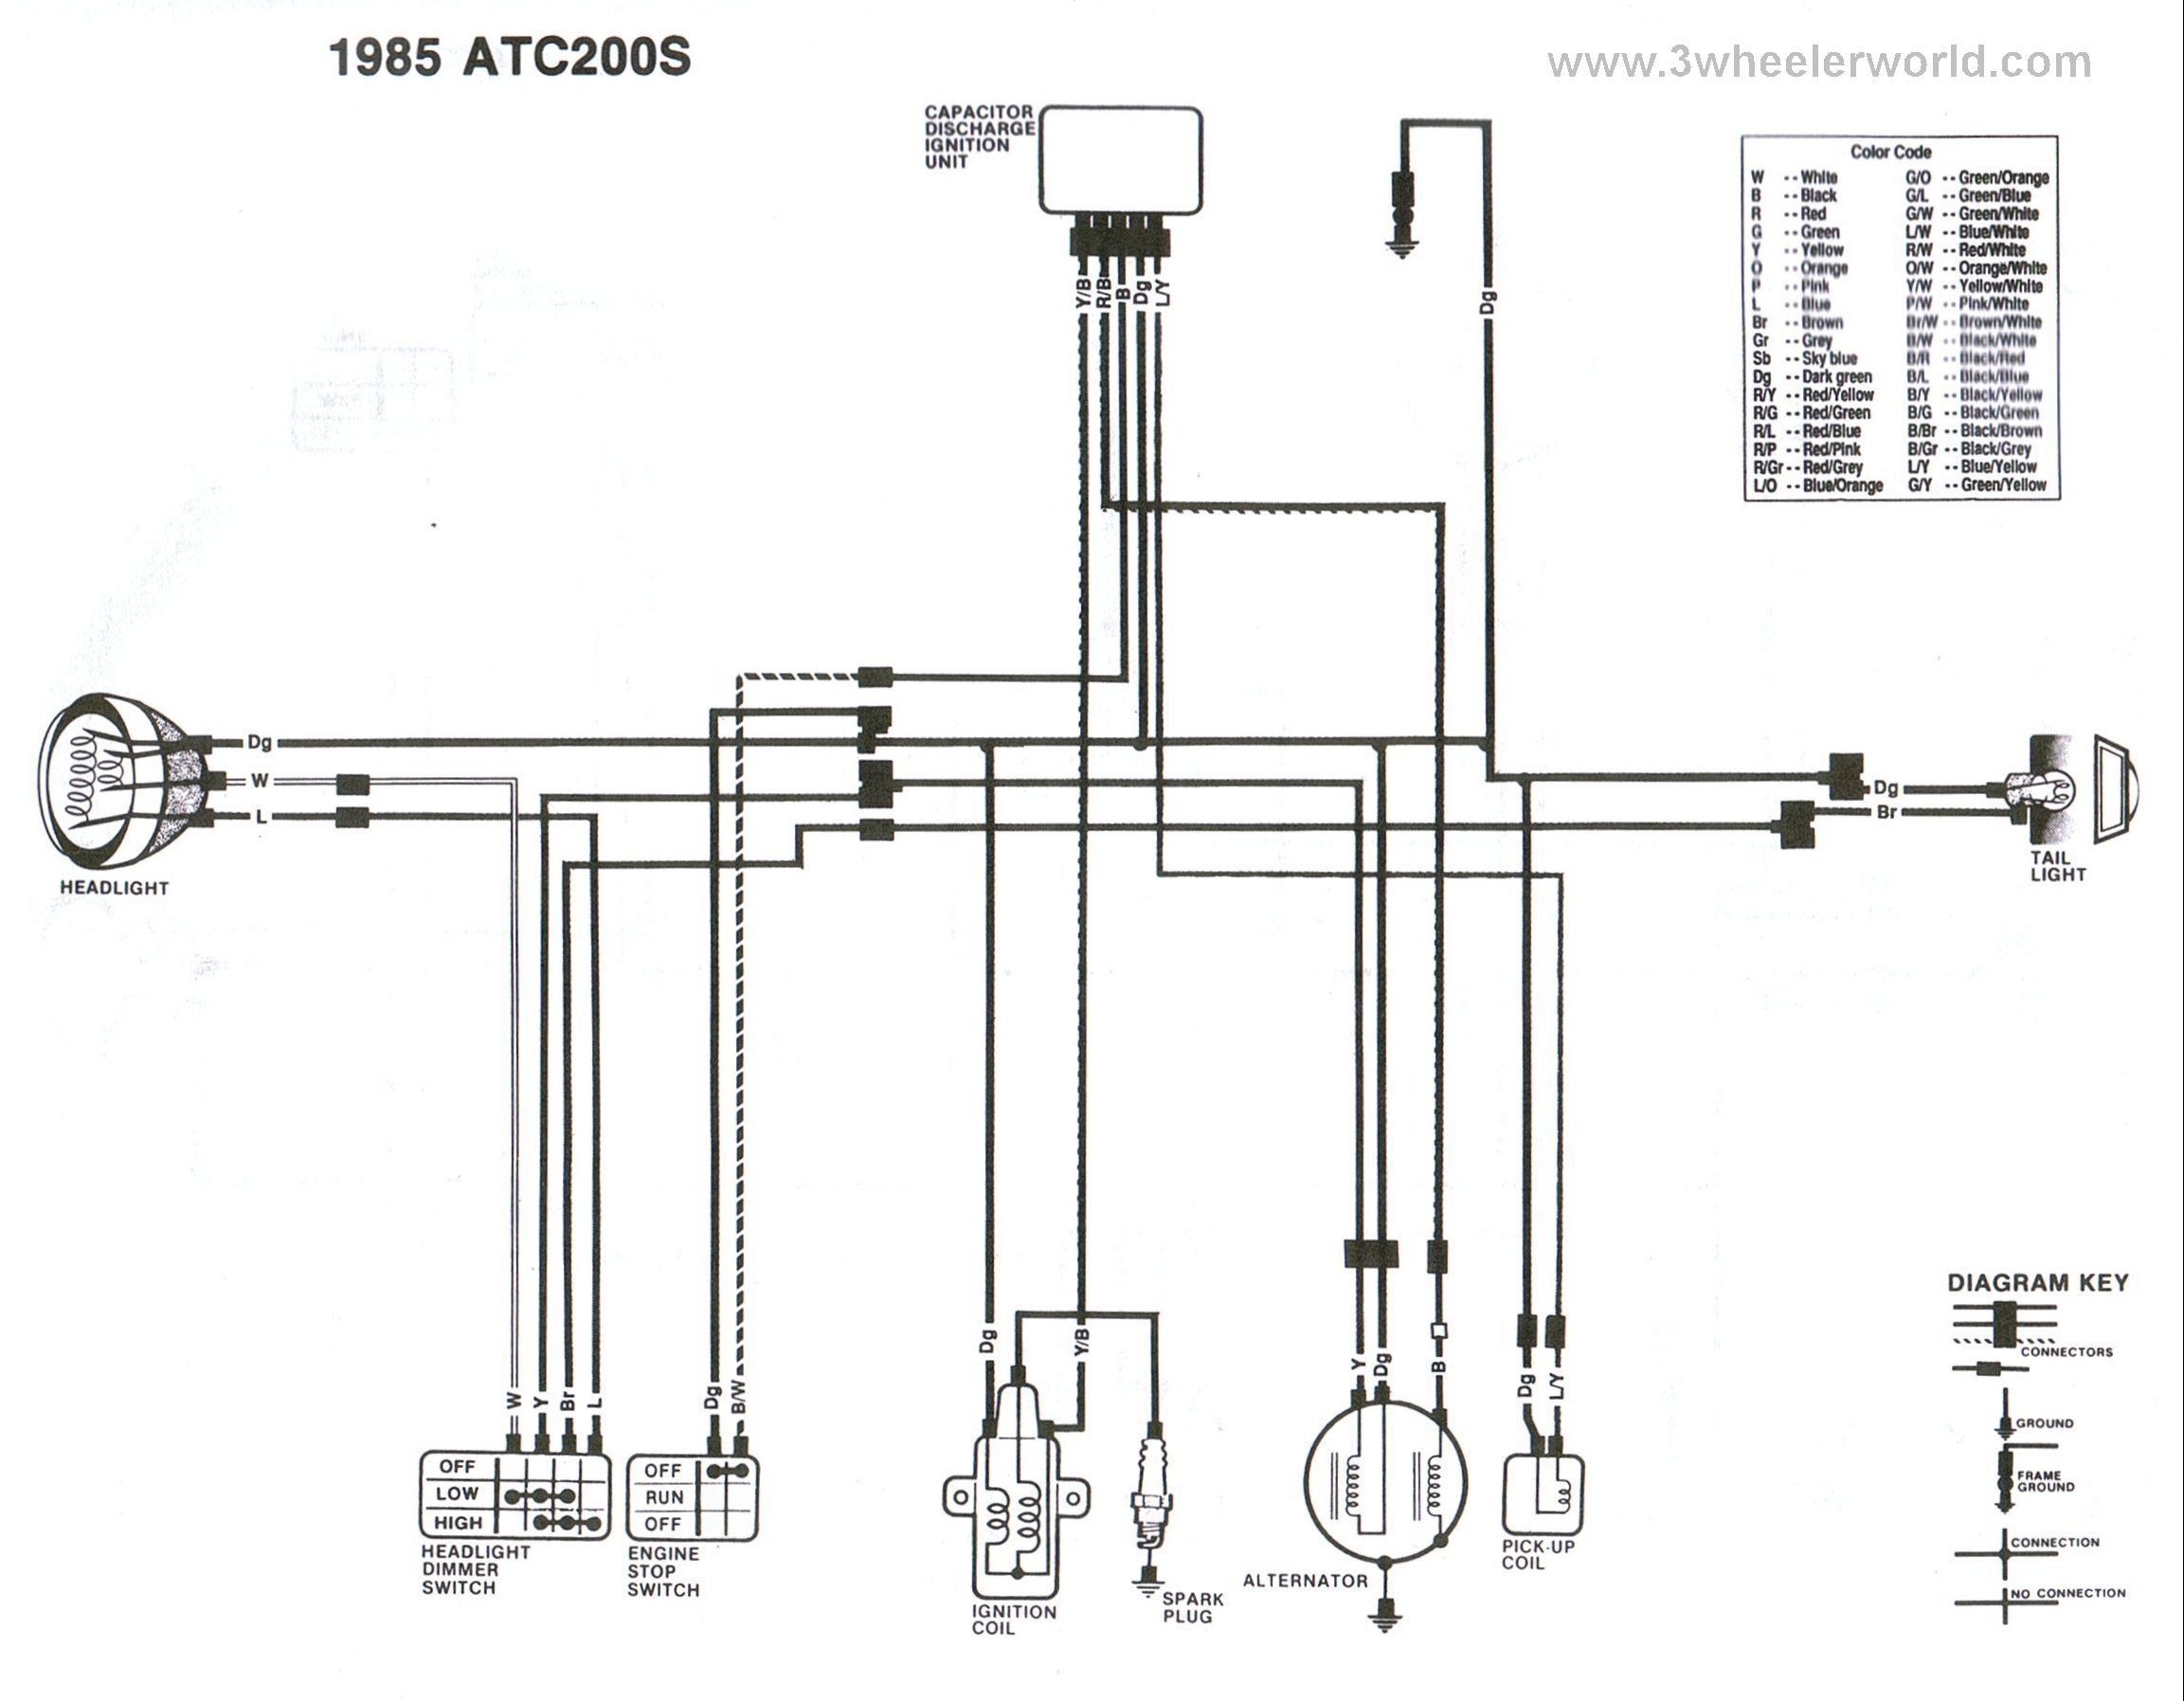 Atv 200 Wiring Diagram Worksheet And Chinese Diagrams For Roketa Atc 200m Detailed Schematics Rh Jvpacks Com Peace 110cc